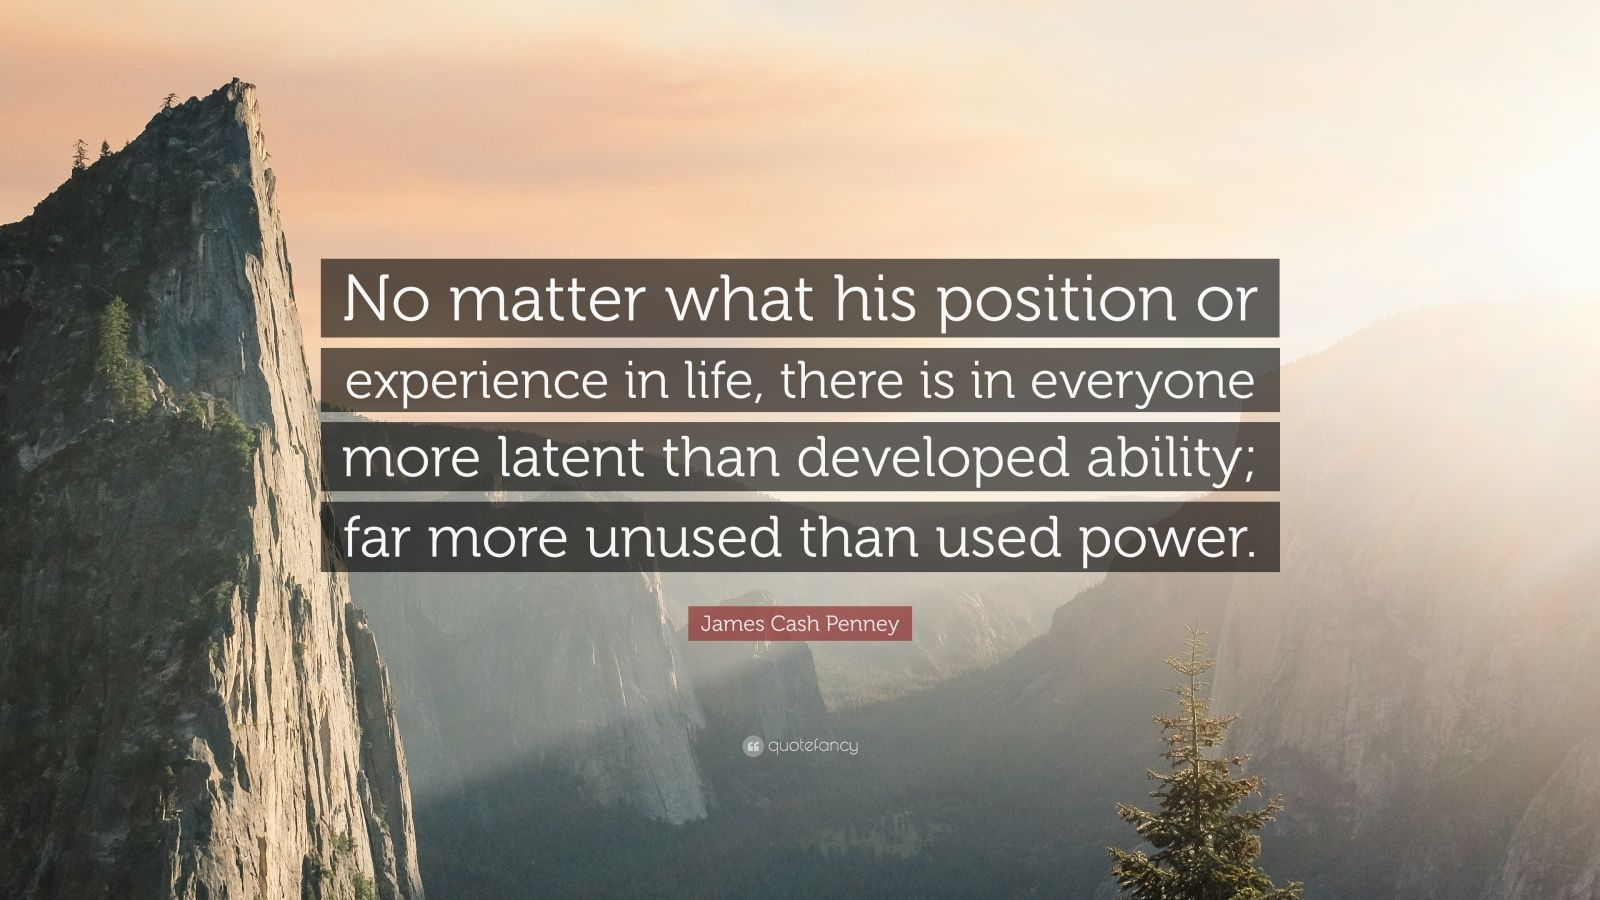 """James Cash Penney Quote: """"No matter what his position or experience in life, there is in everyone more latent than developed ability; far more unused than used power."""""""